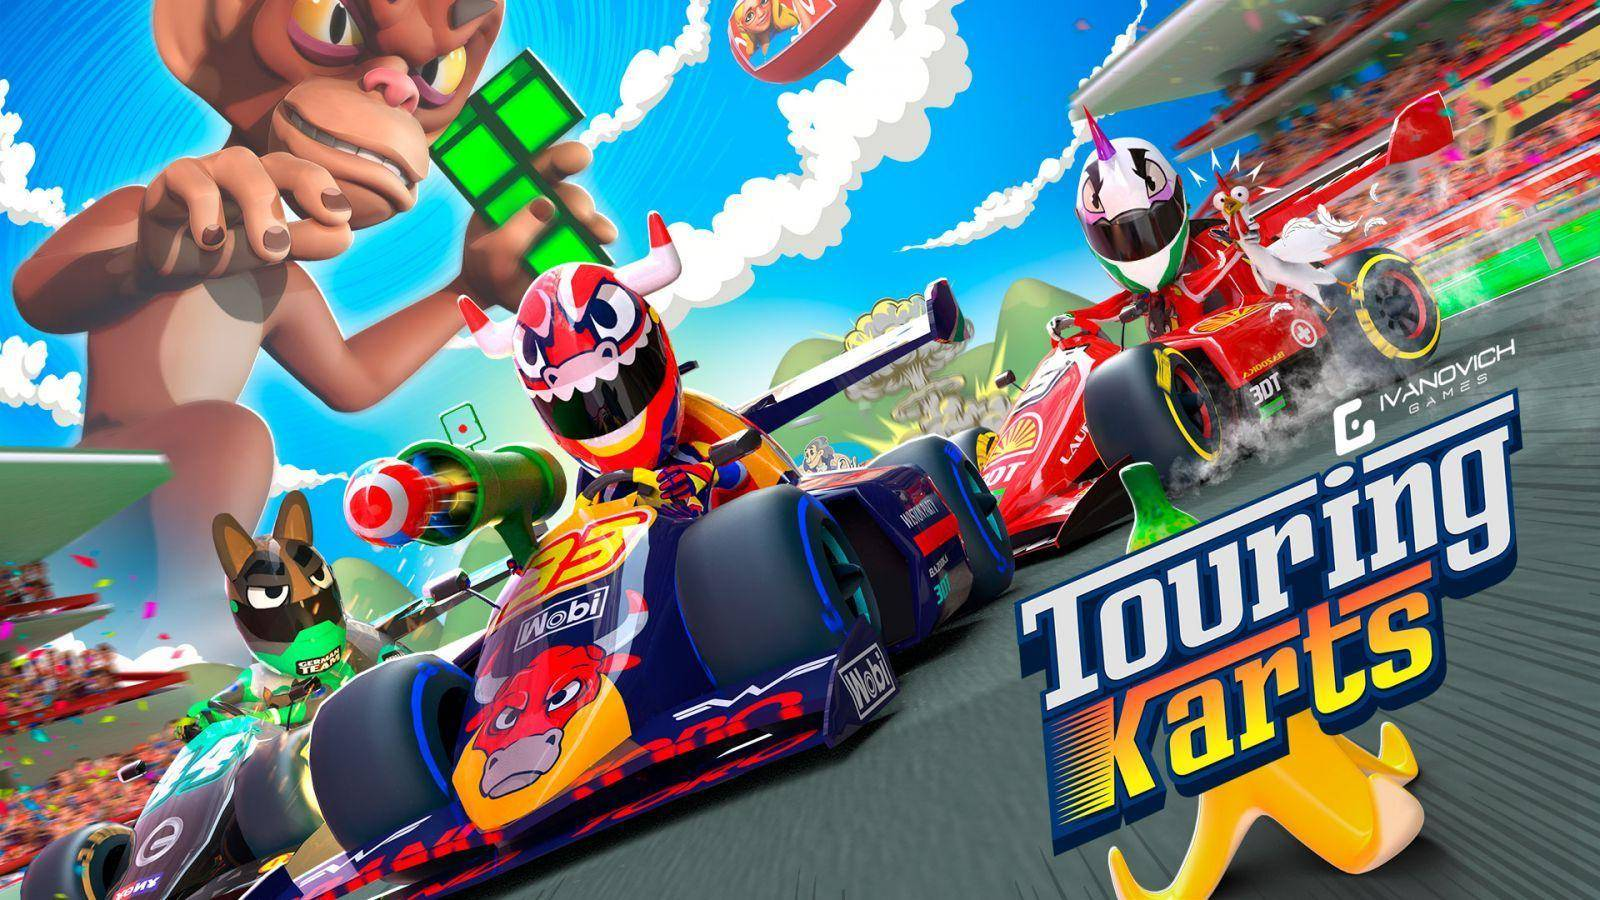 Reseña: Touring Karts (PS4, Switch, Steam)